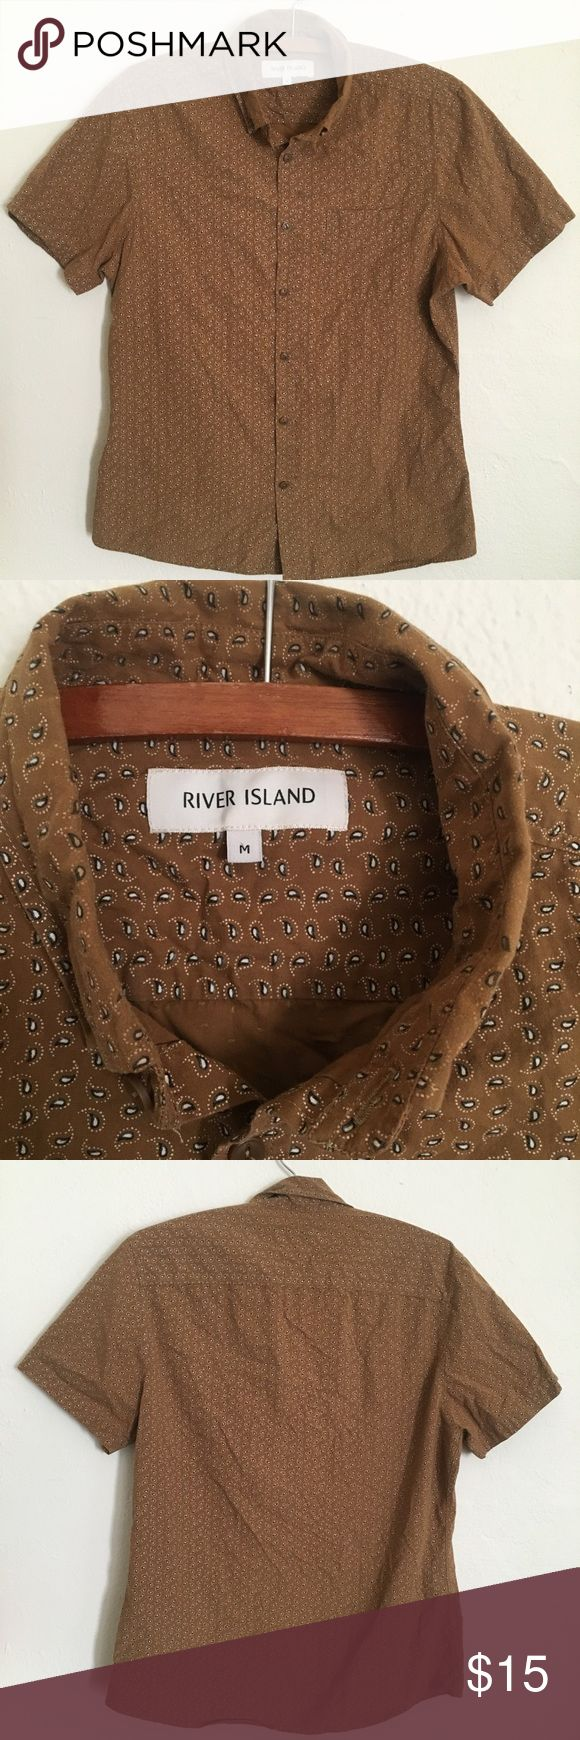 River Island tan paisley button up short sleeve Short sleeve tan button down shirt with chest pocket. Perfect for summer River Island Shirts Casual Button Down Shirts